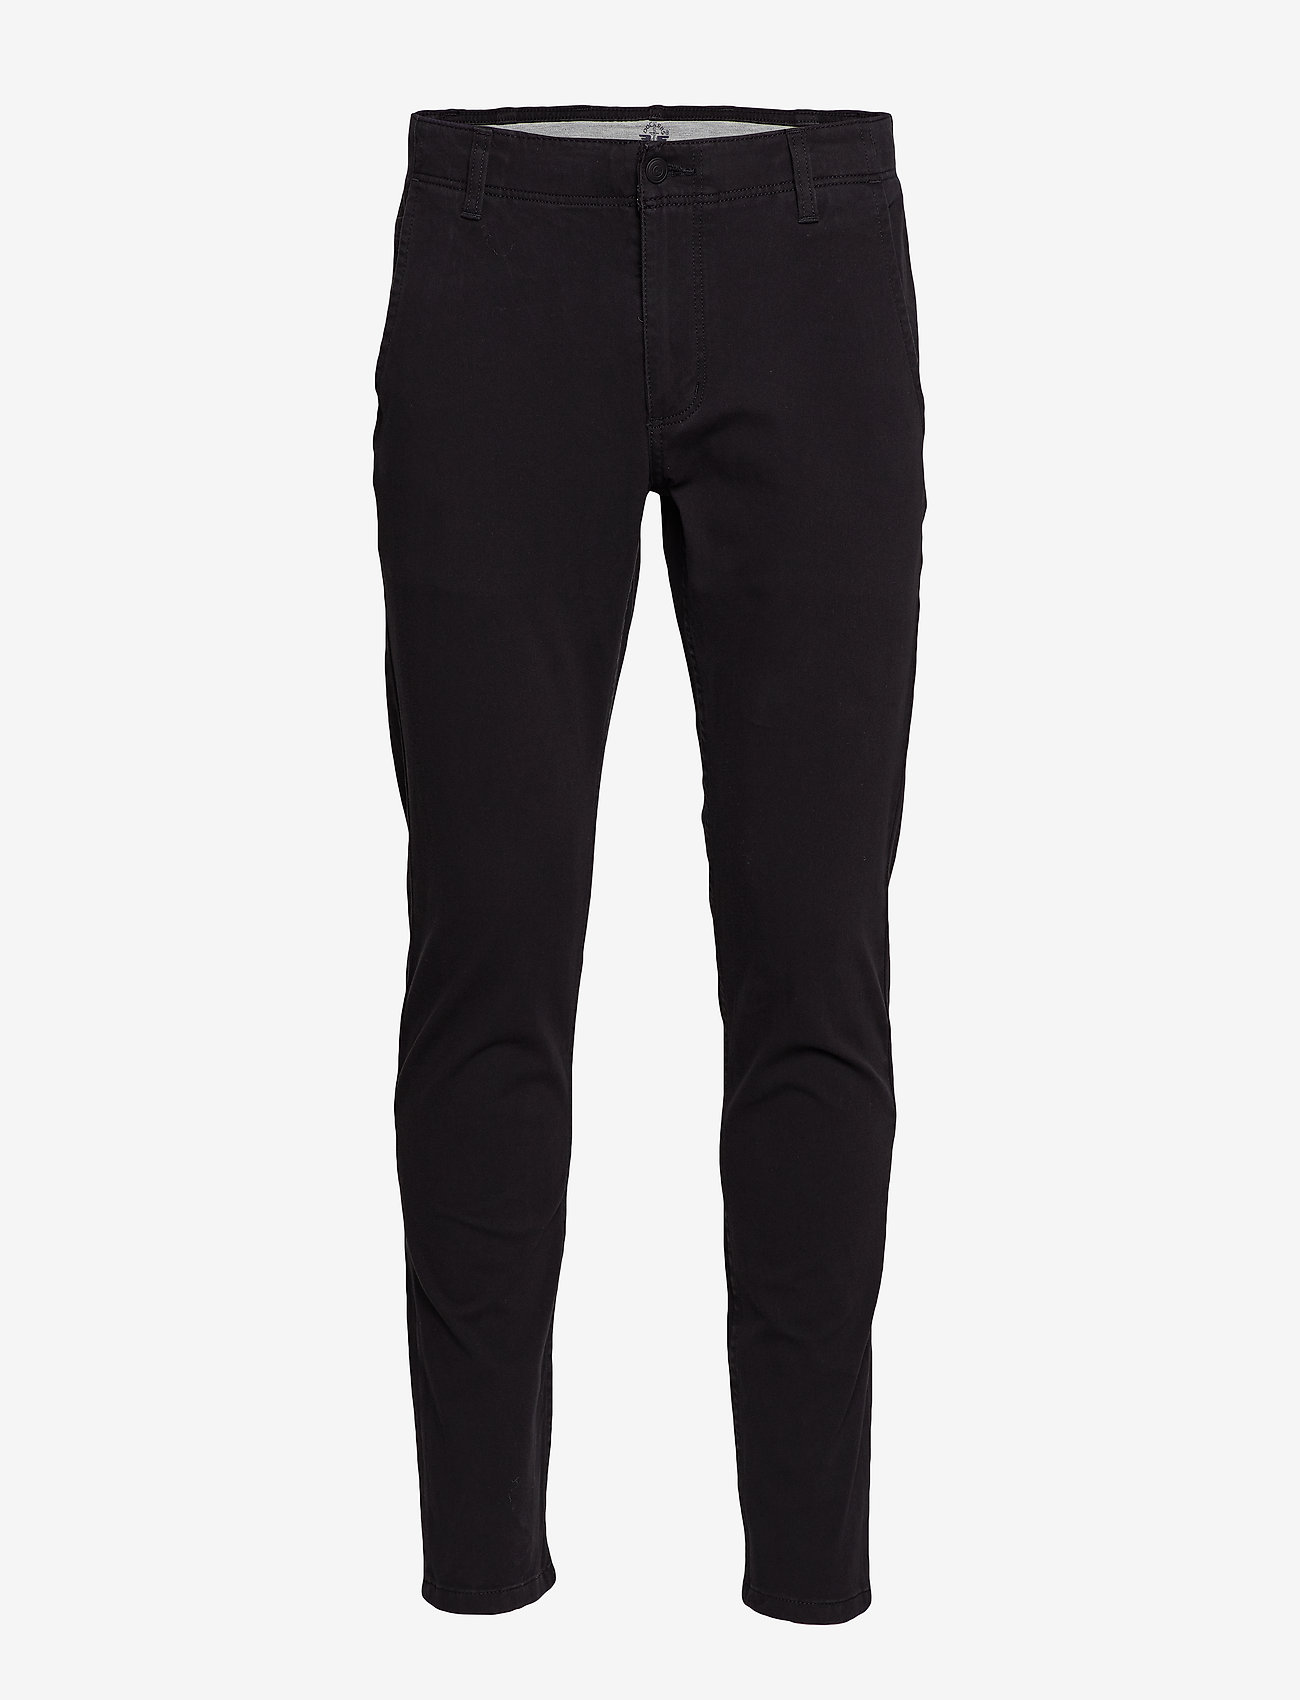 Dockers - ALPHA KHAKI 360 SKINNY BLACK - chinosy - blacks - 0